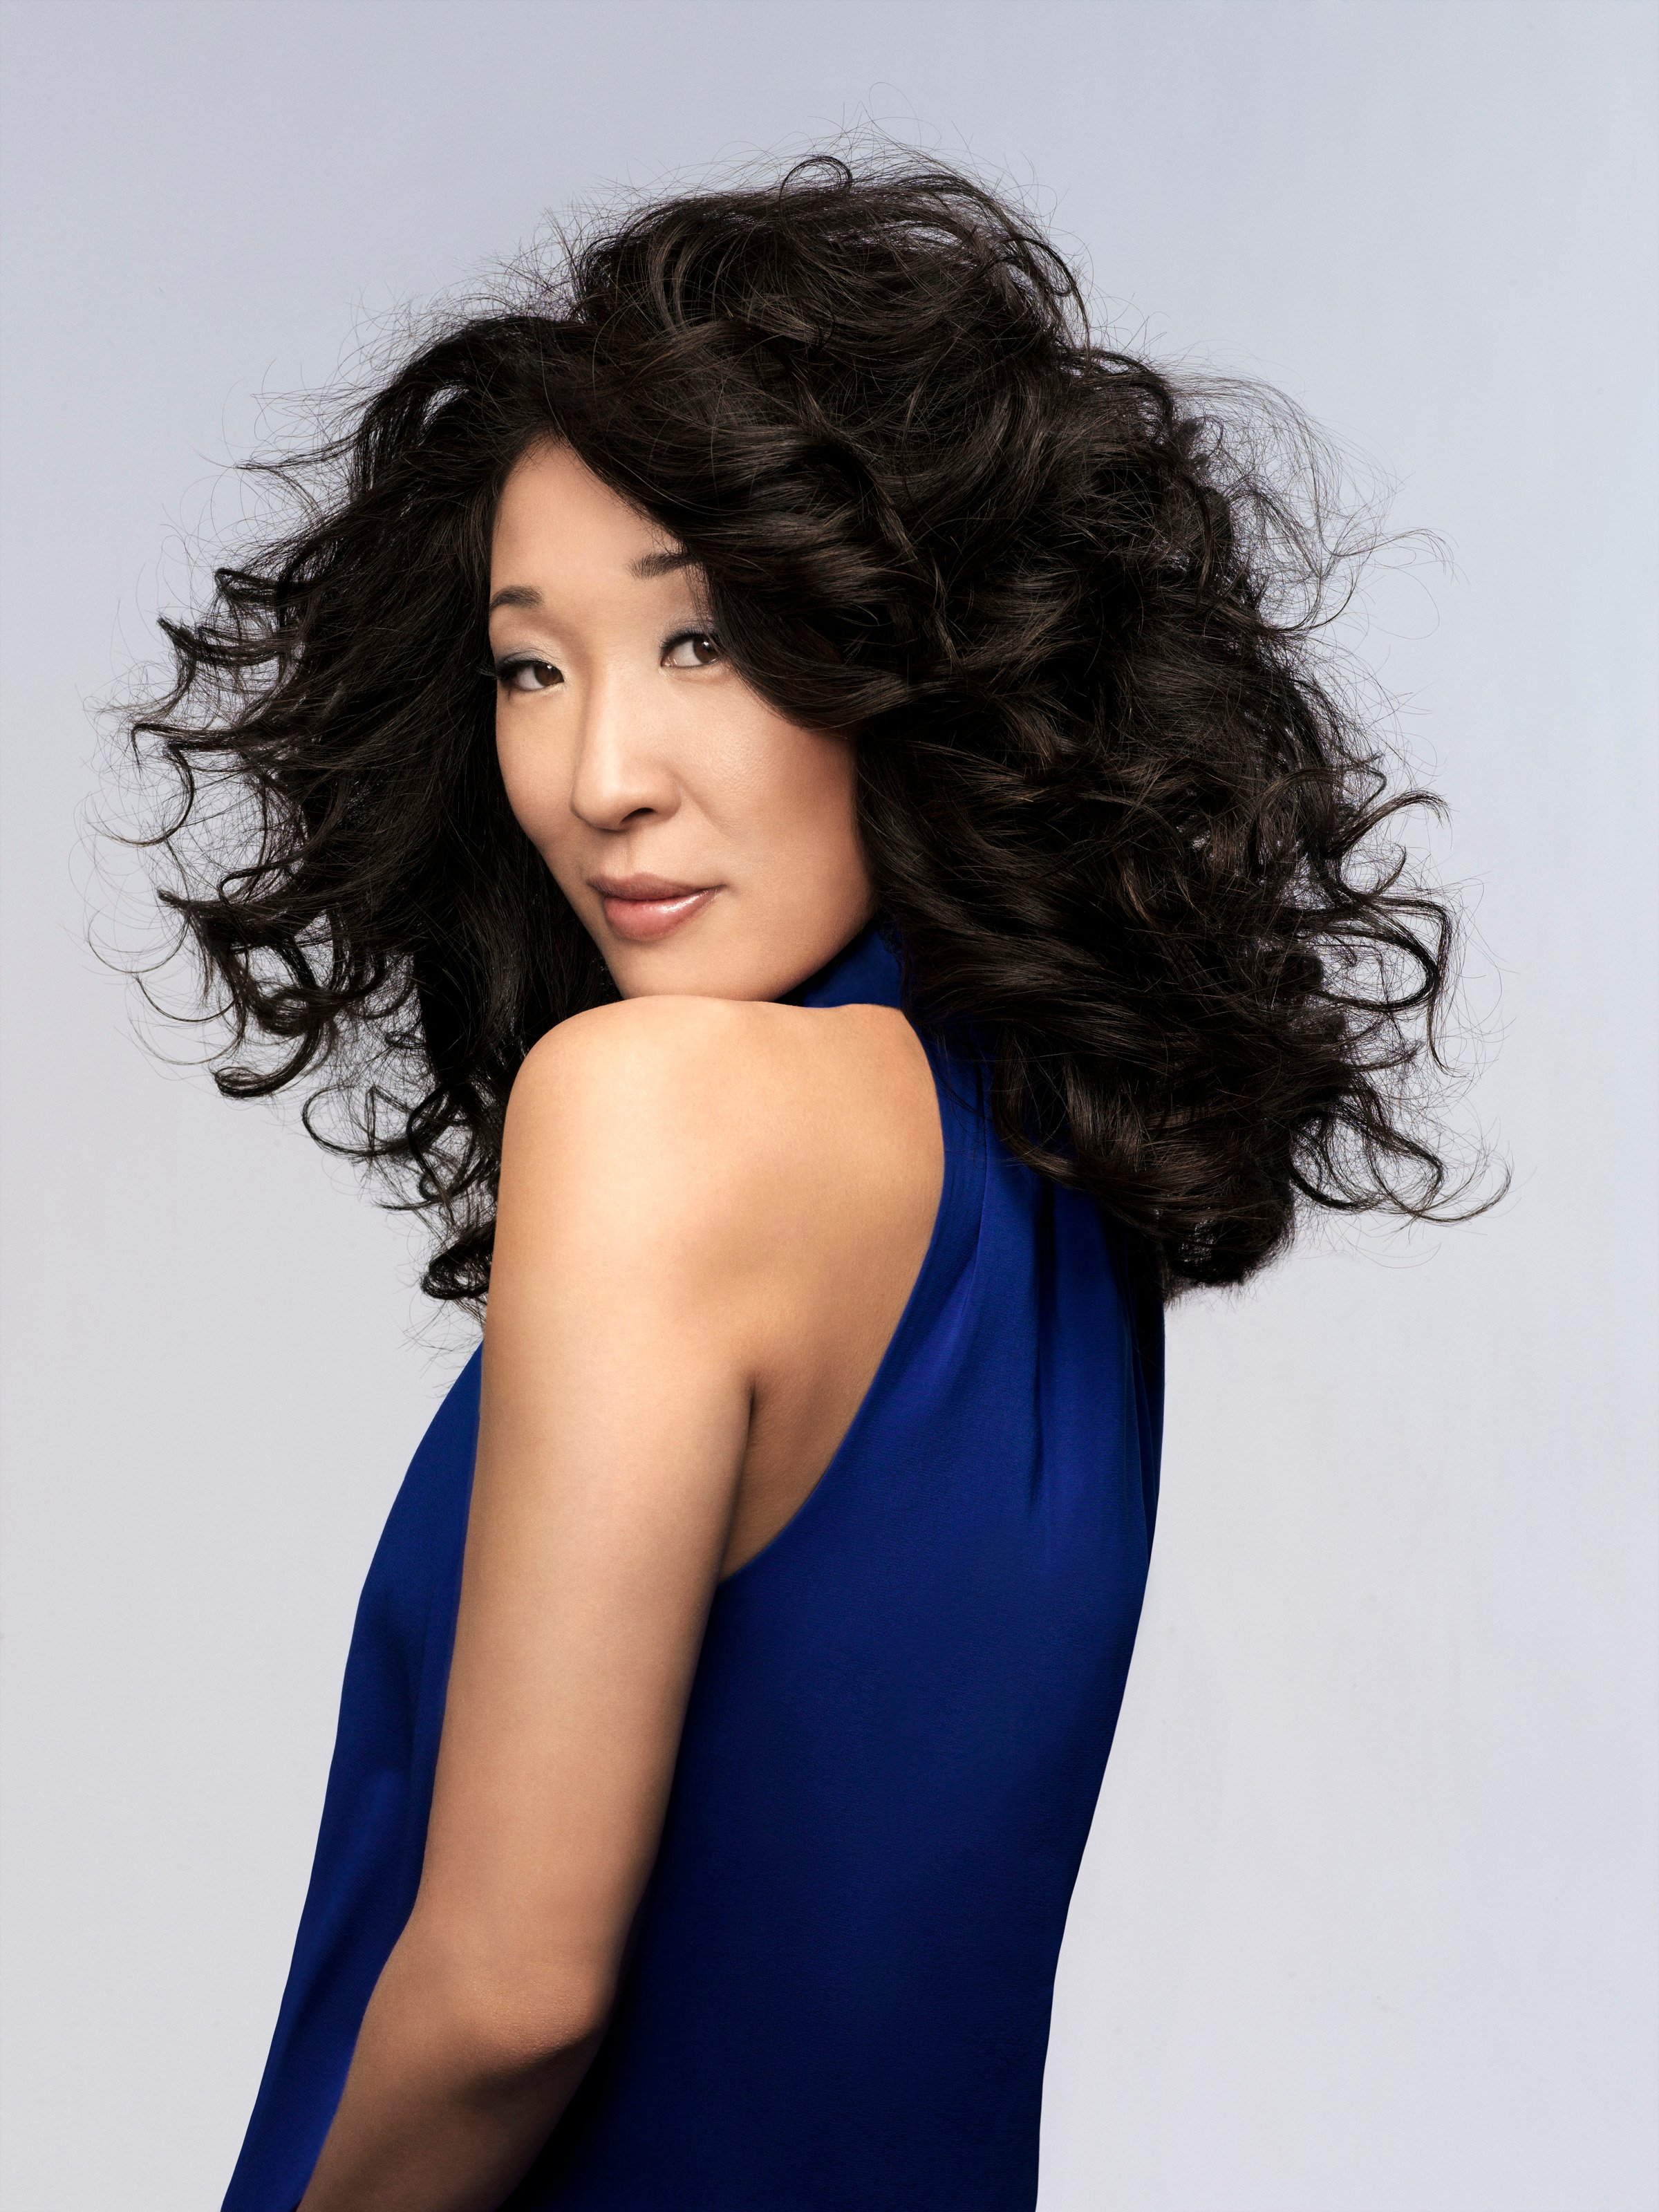 12 Jan 2007 --- Sandra Oh --- Image by © James White/Corbis Outline